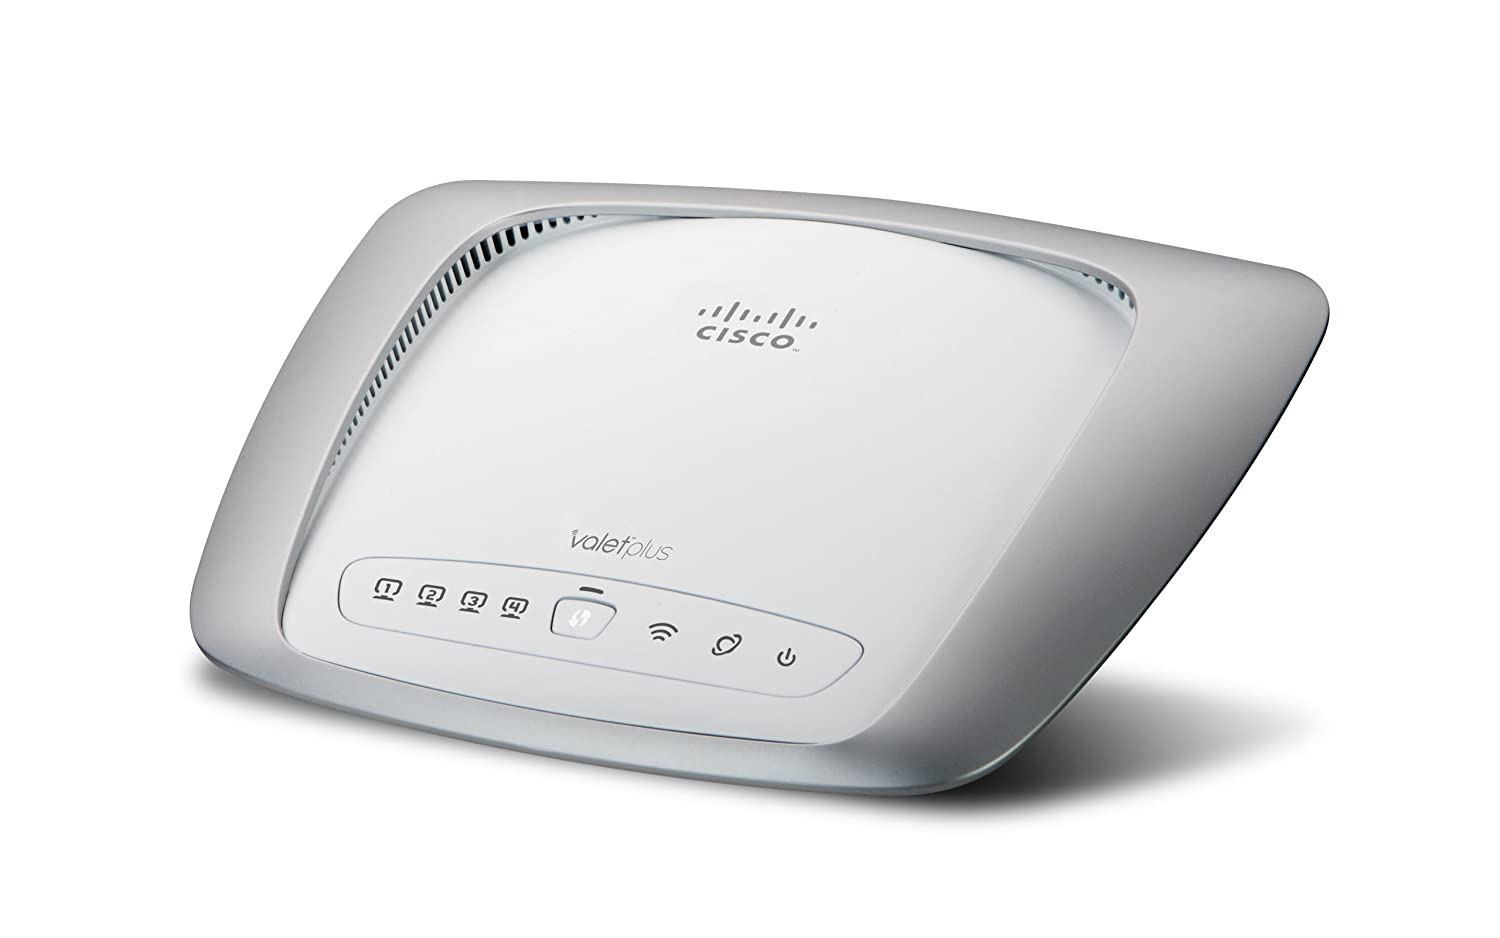 Amazon.com: Cisco-Valet Plus Wireless Router: Electronics